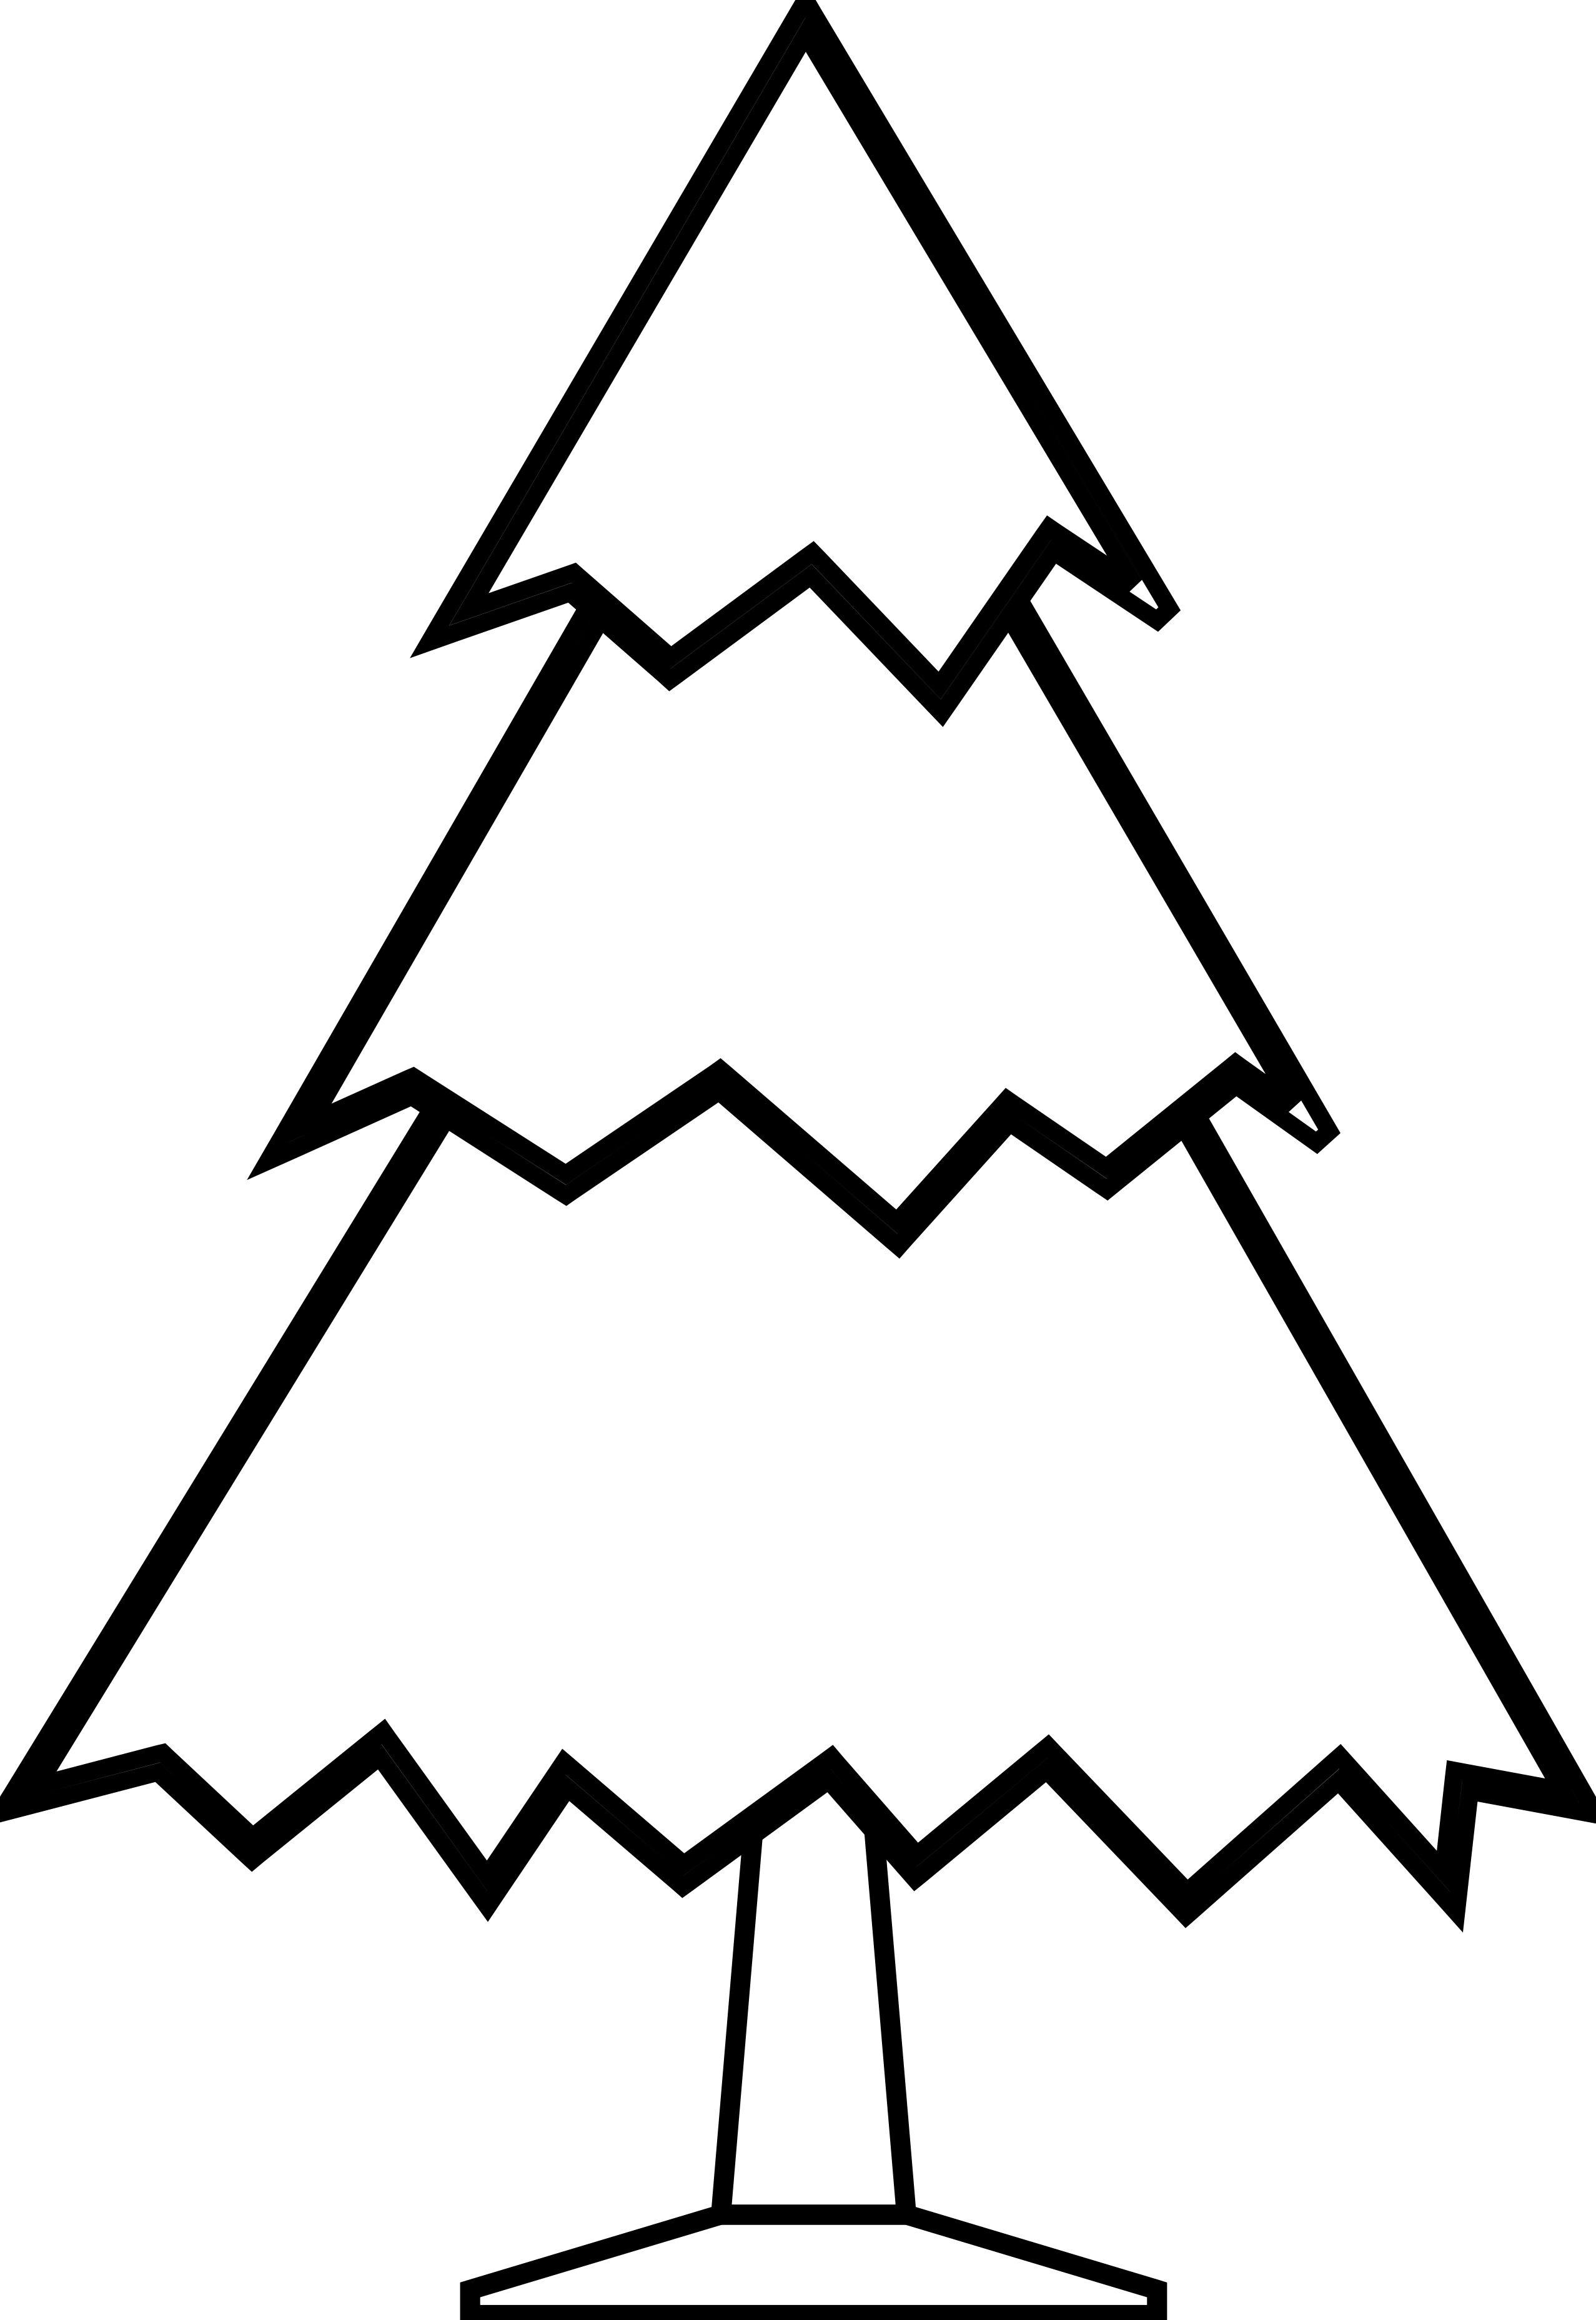 Law drawing simple. Free christmas line download